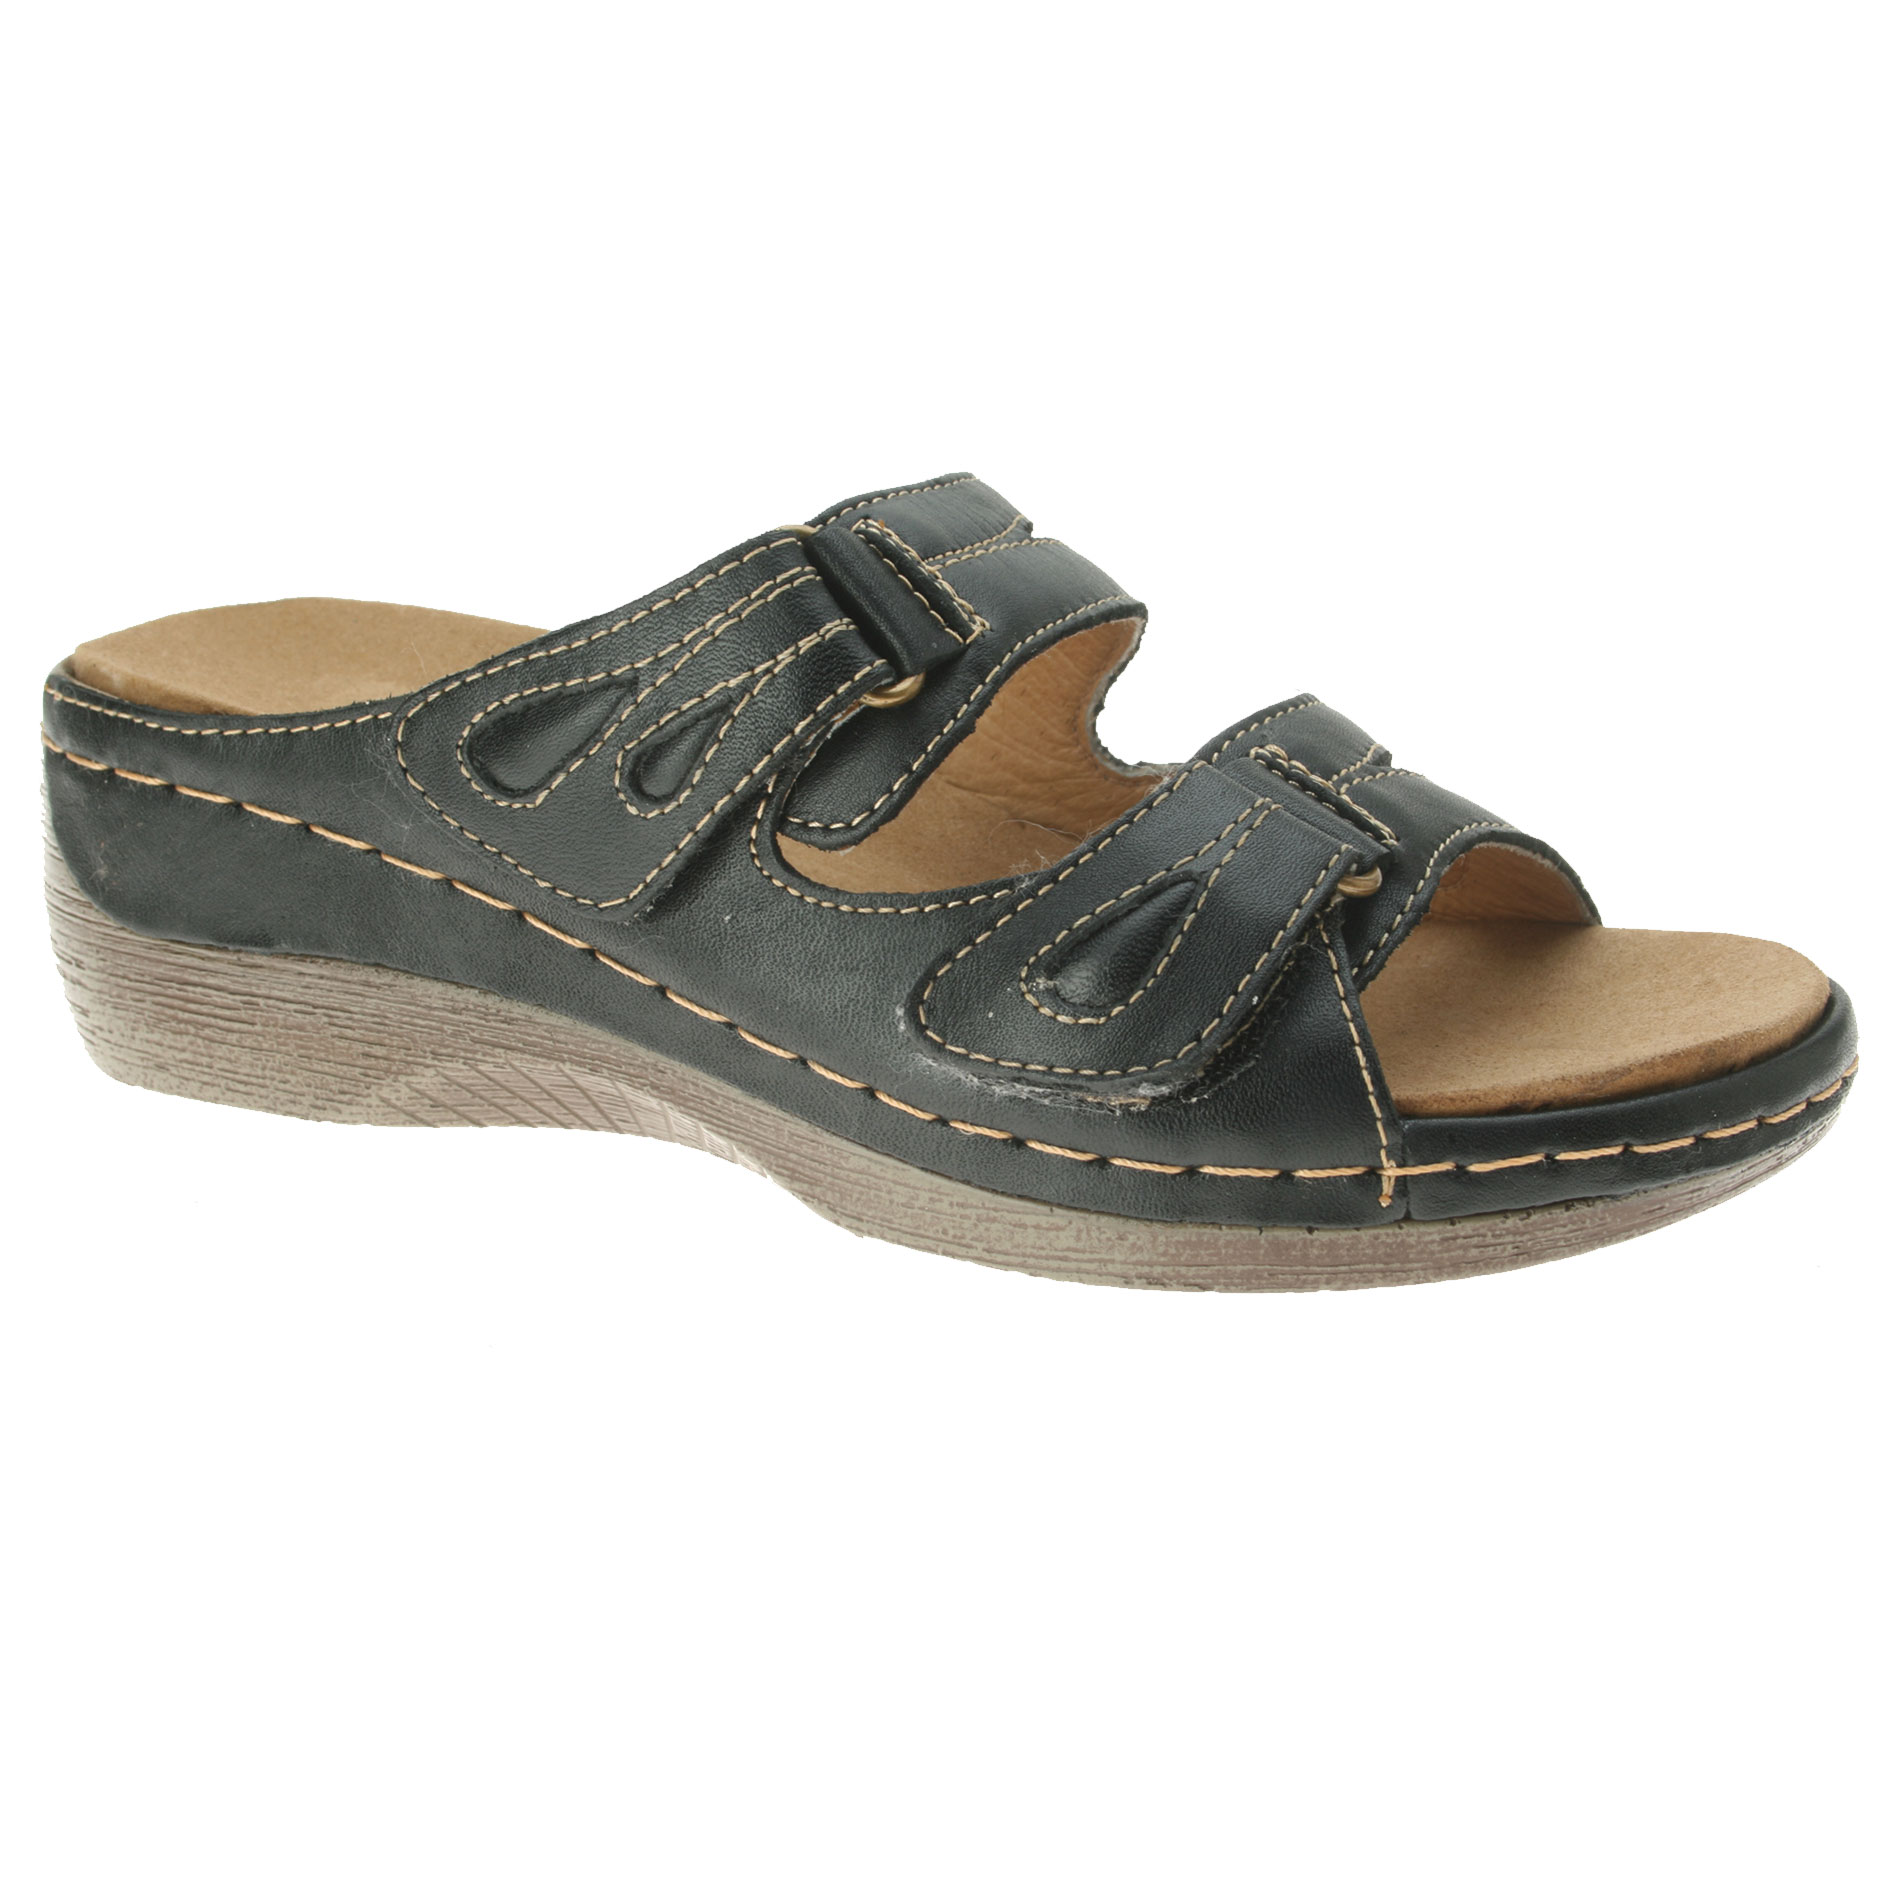 Women's sandals with removable insoles -  Sunshine Women S Leather Sandal Black